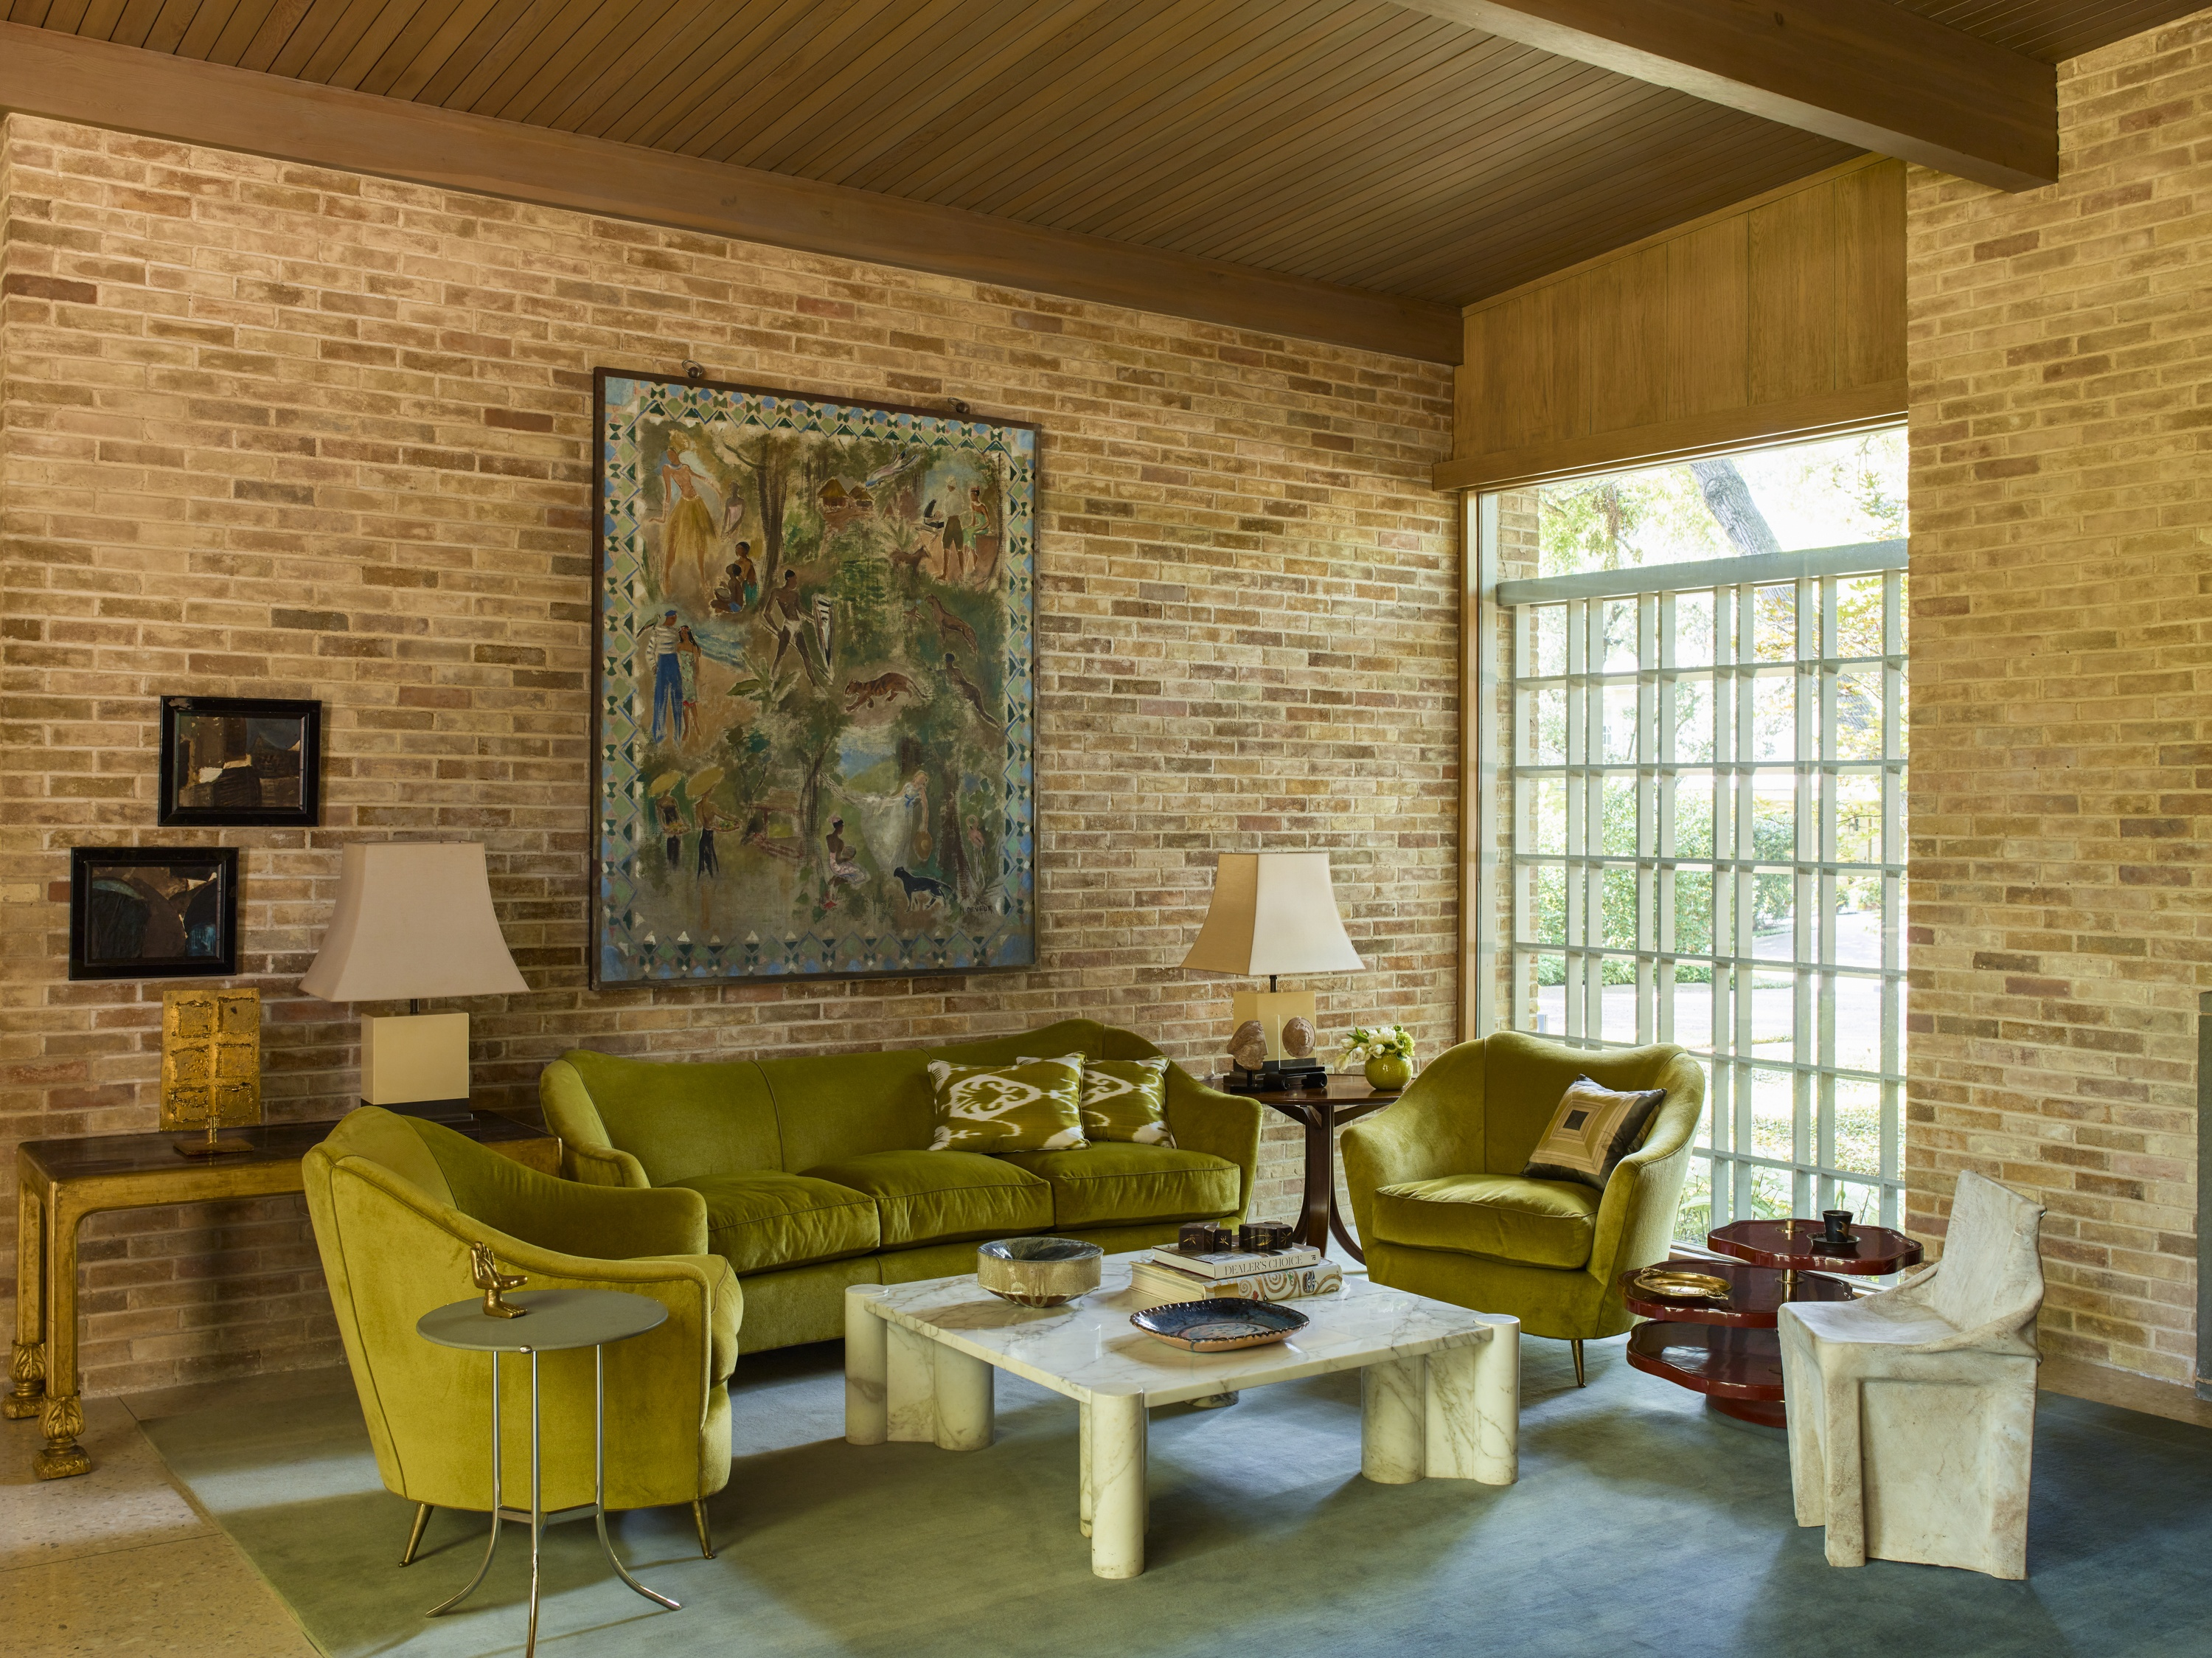 Always a fan of the mix, Summers combines a 1960s Italian sofa and chairs, Gae Aulenti's marble coffee table, French postwar lacquered lamps, and Niels van Eijk's 1997 Cow chair. She found the 1940s painting in Paris, and her husband later surprised her with it as a gift.